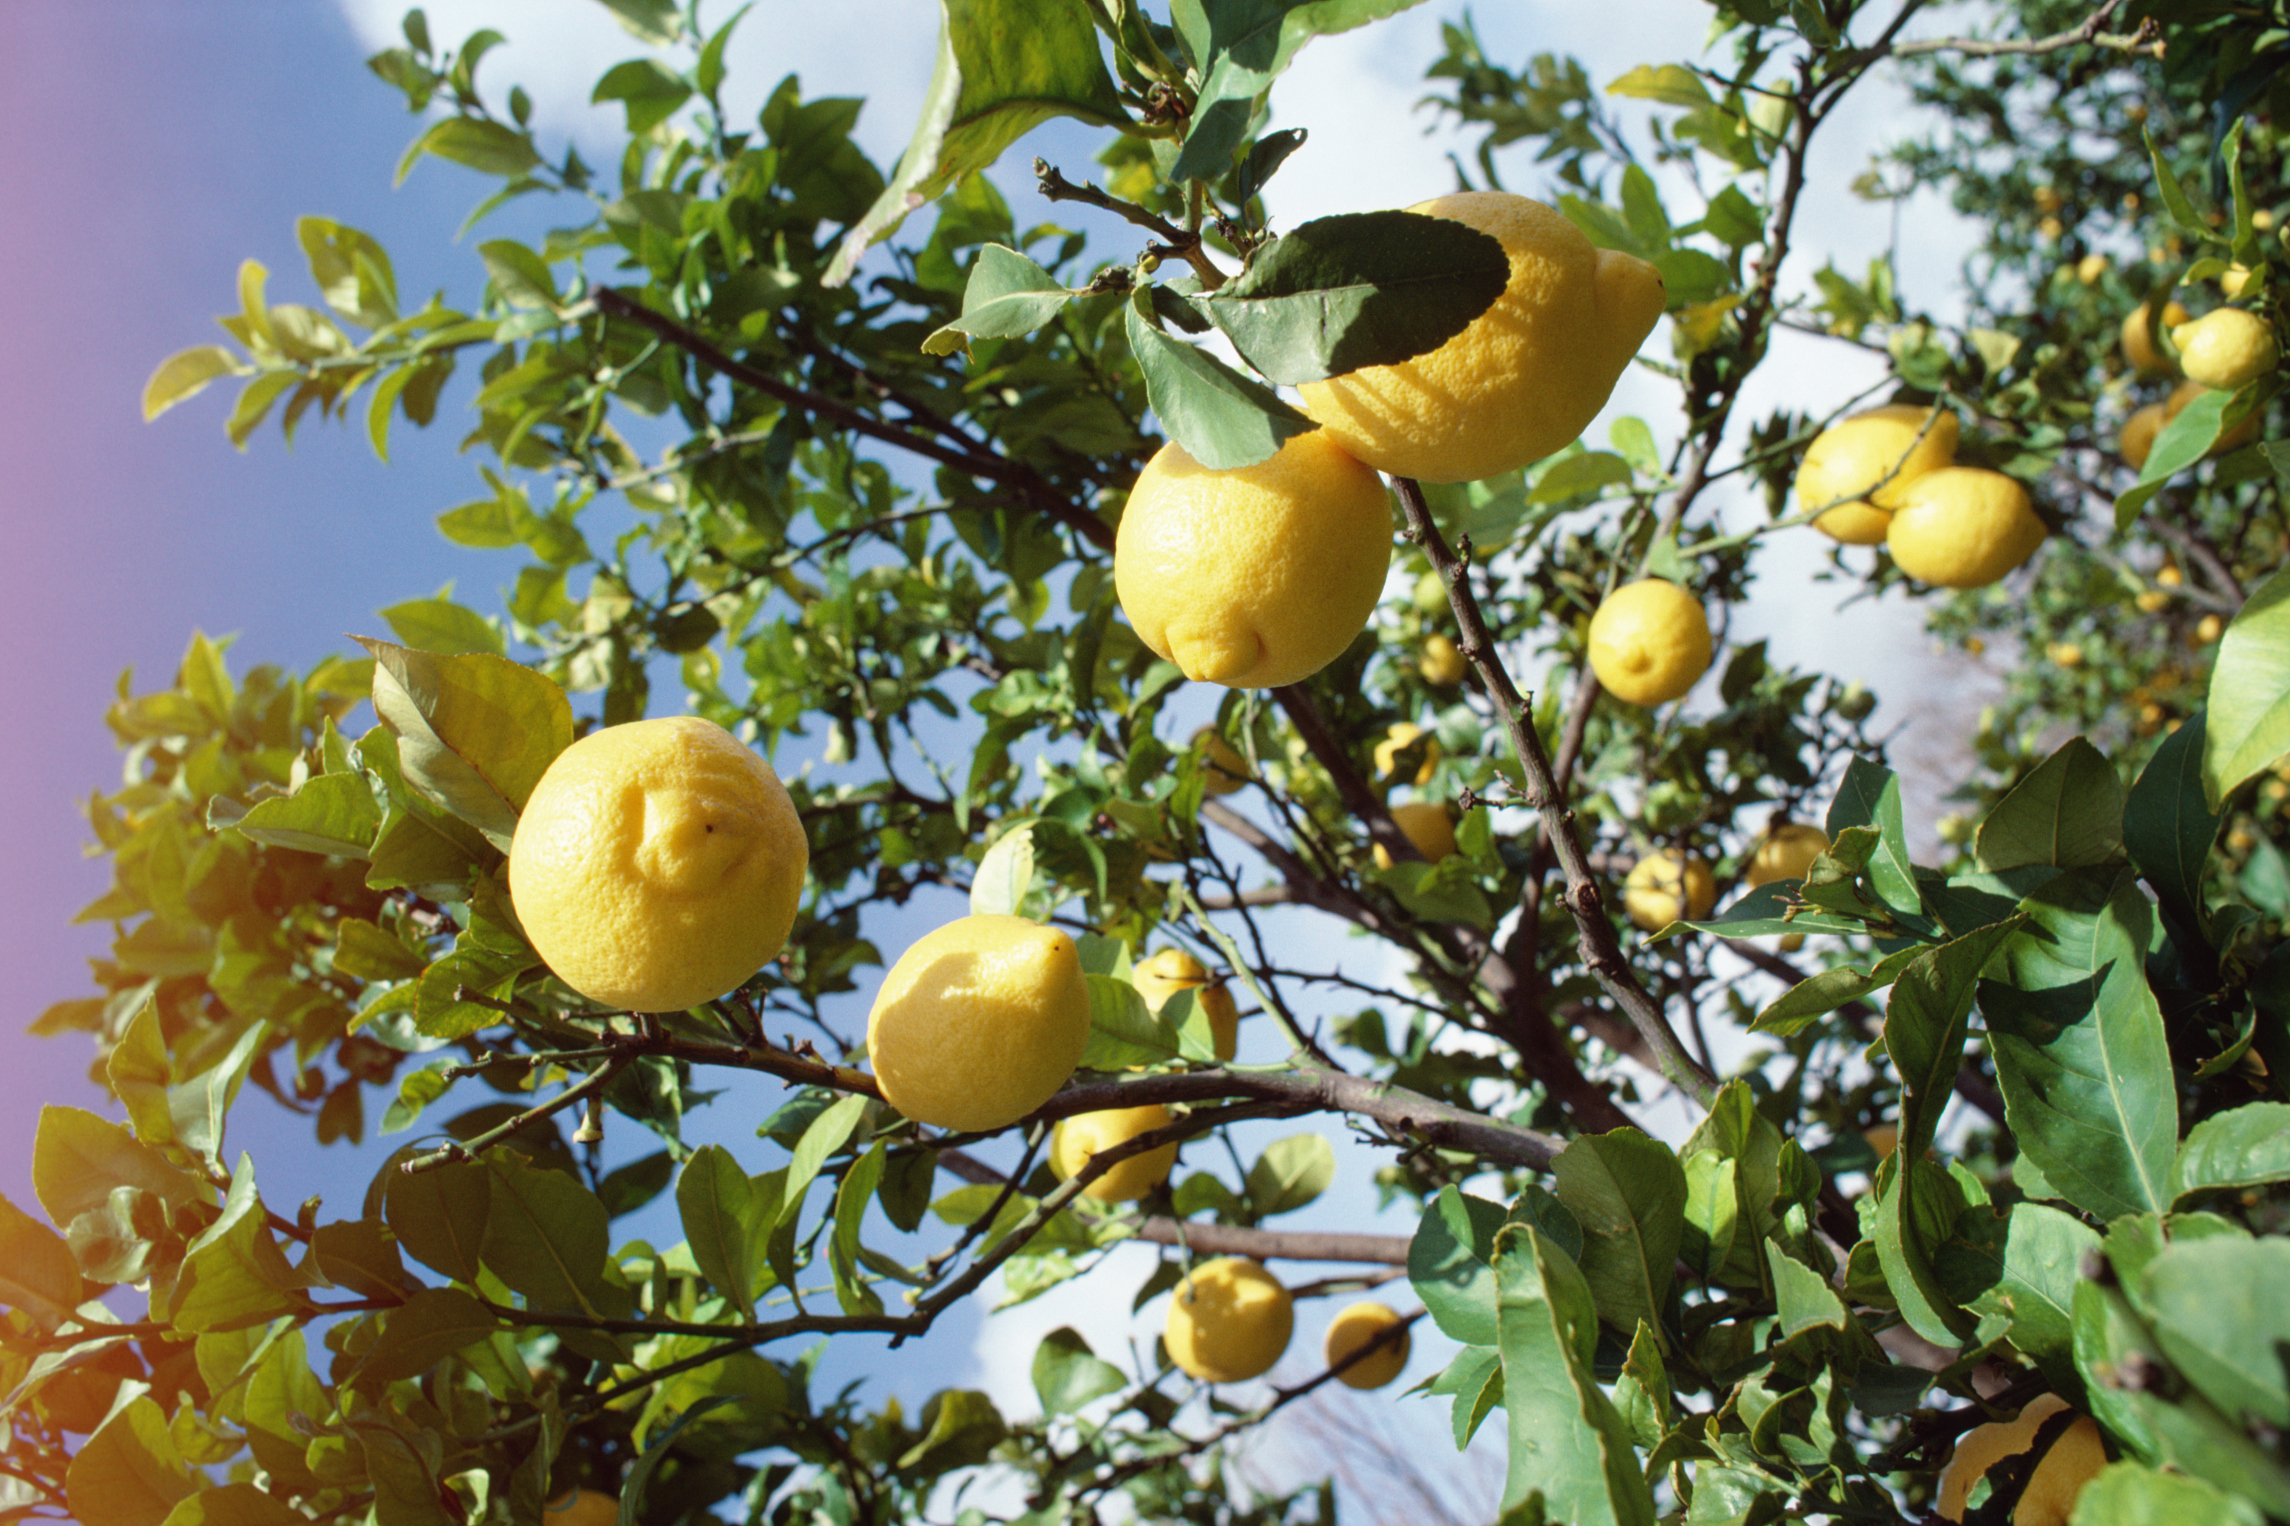 How to Grow a Lemon Tree Outdoors | Home Guides | SF Gate